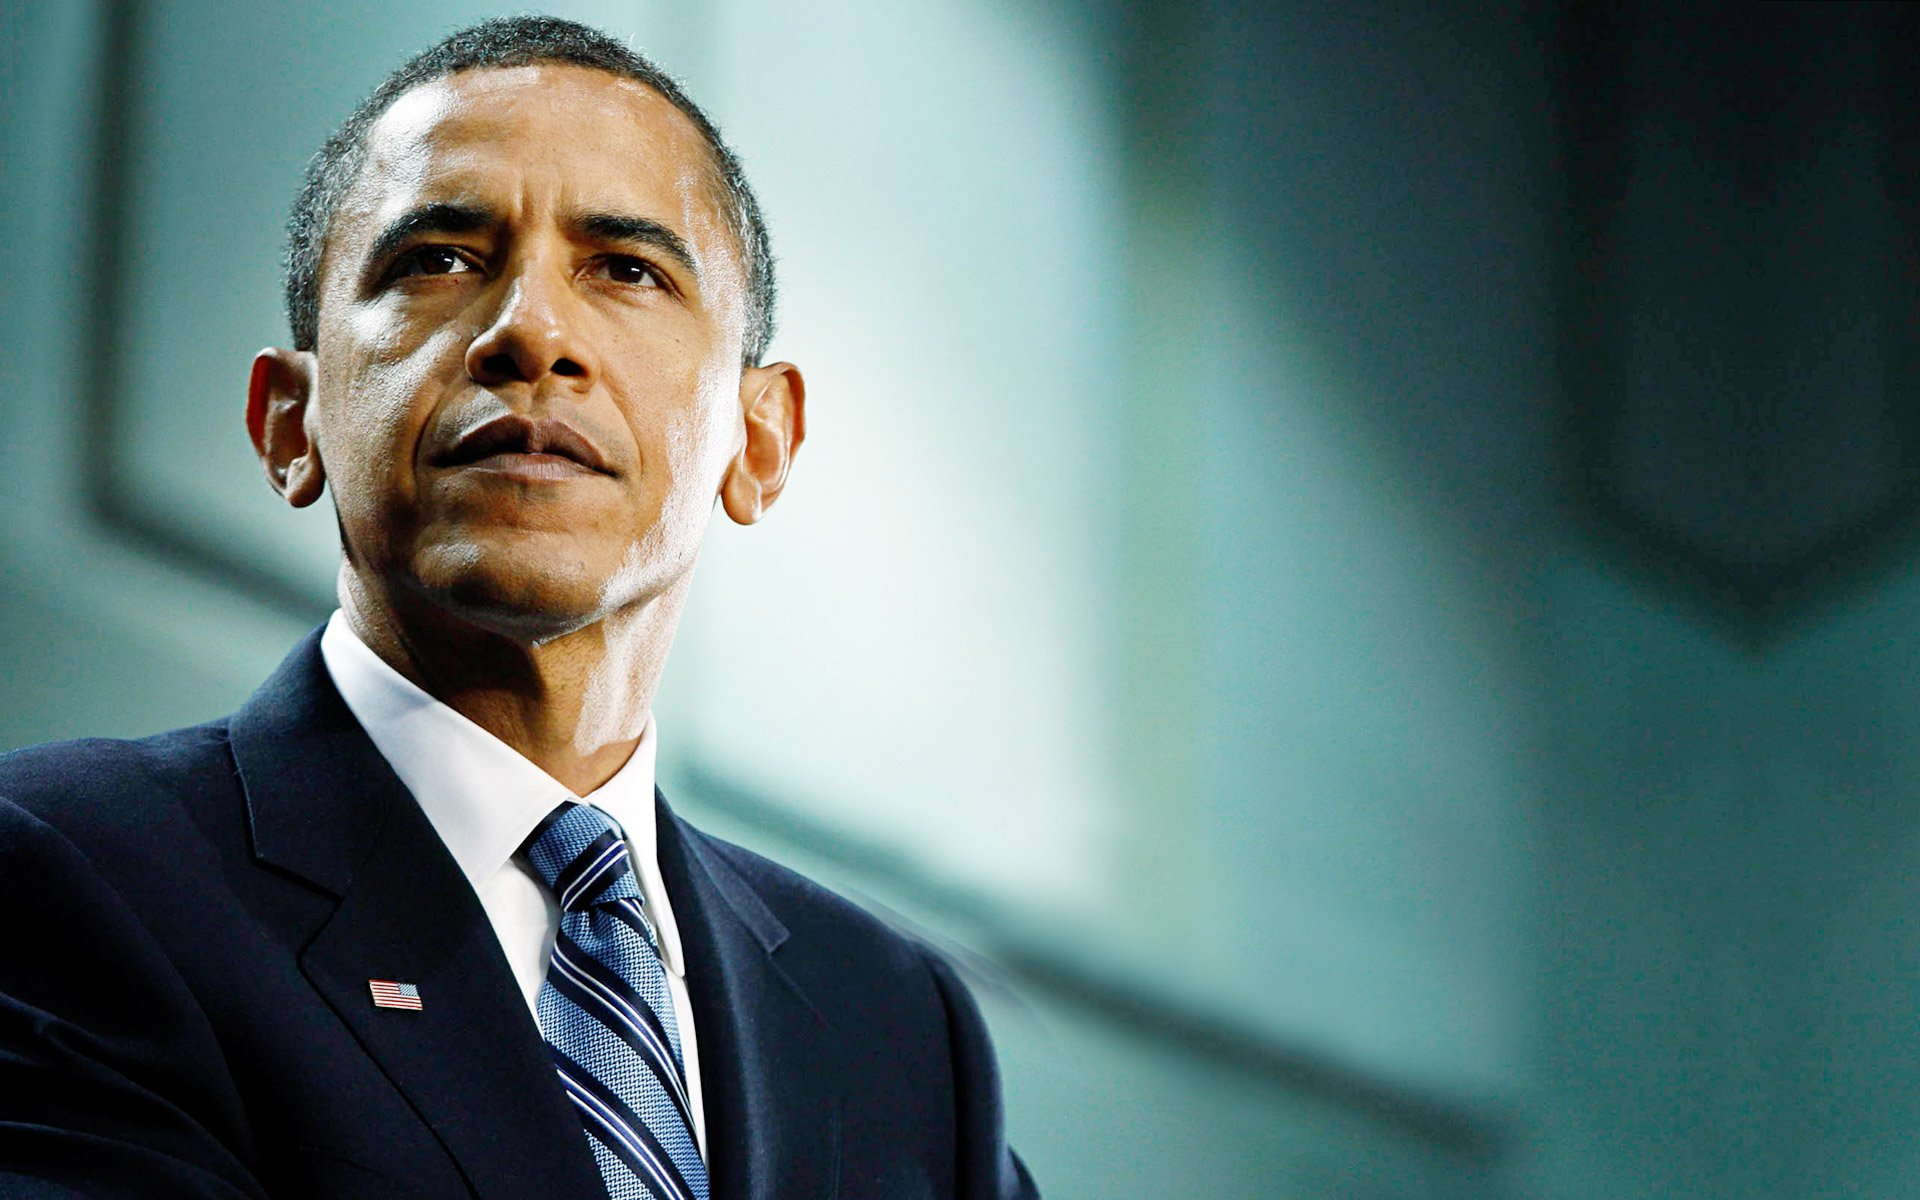 President Barack Obama HD Images Photos amp Wallpapers 1920x1200